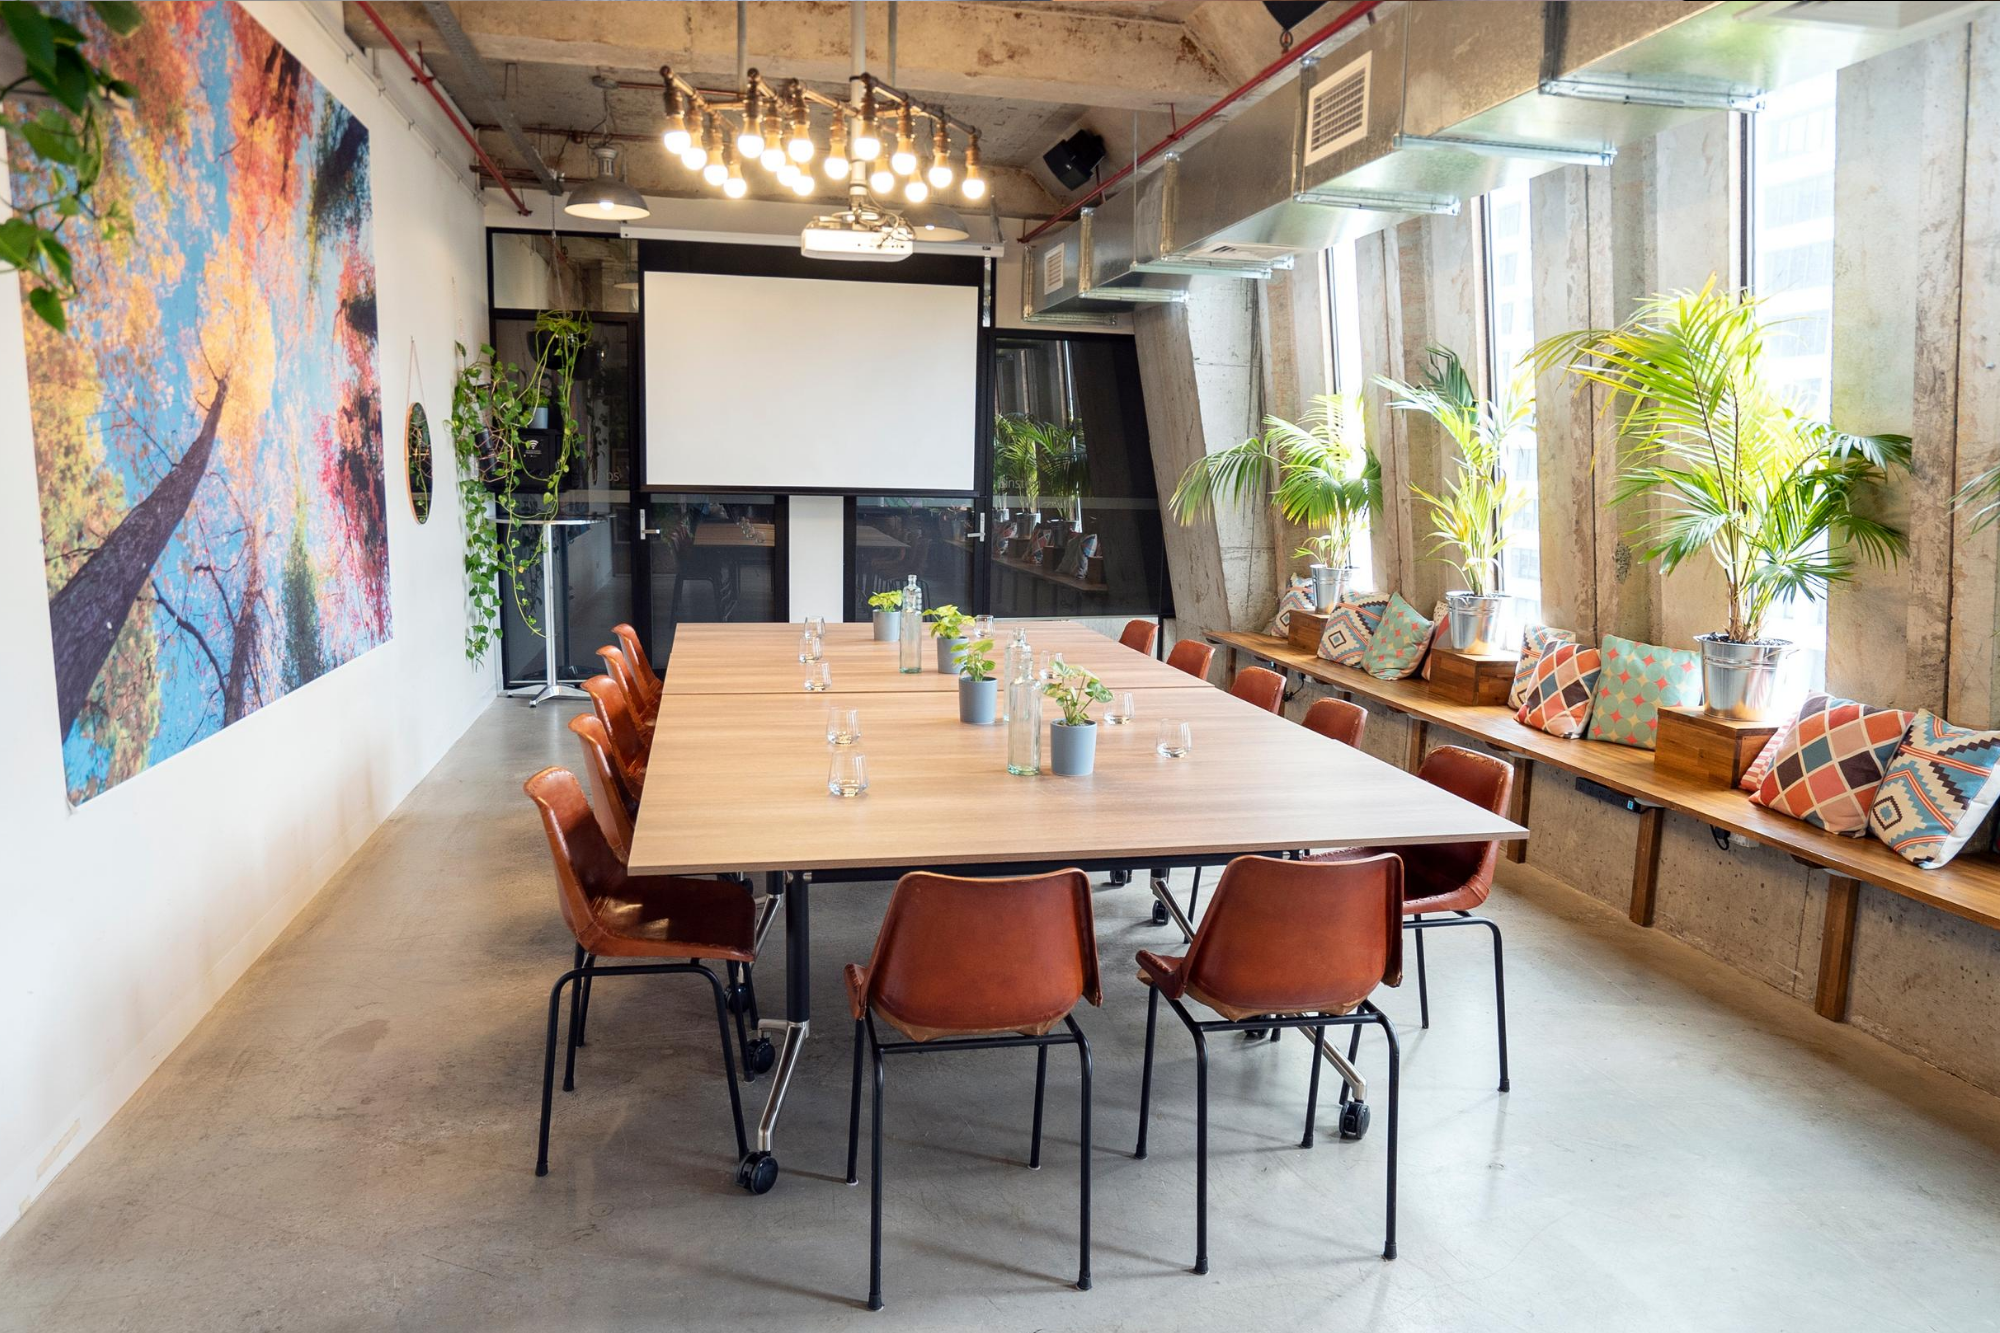 Warehouse 21 event space in Melbourne set up with a large boardroom table facing the projector